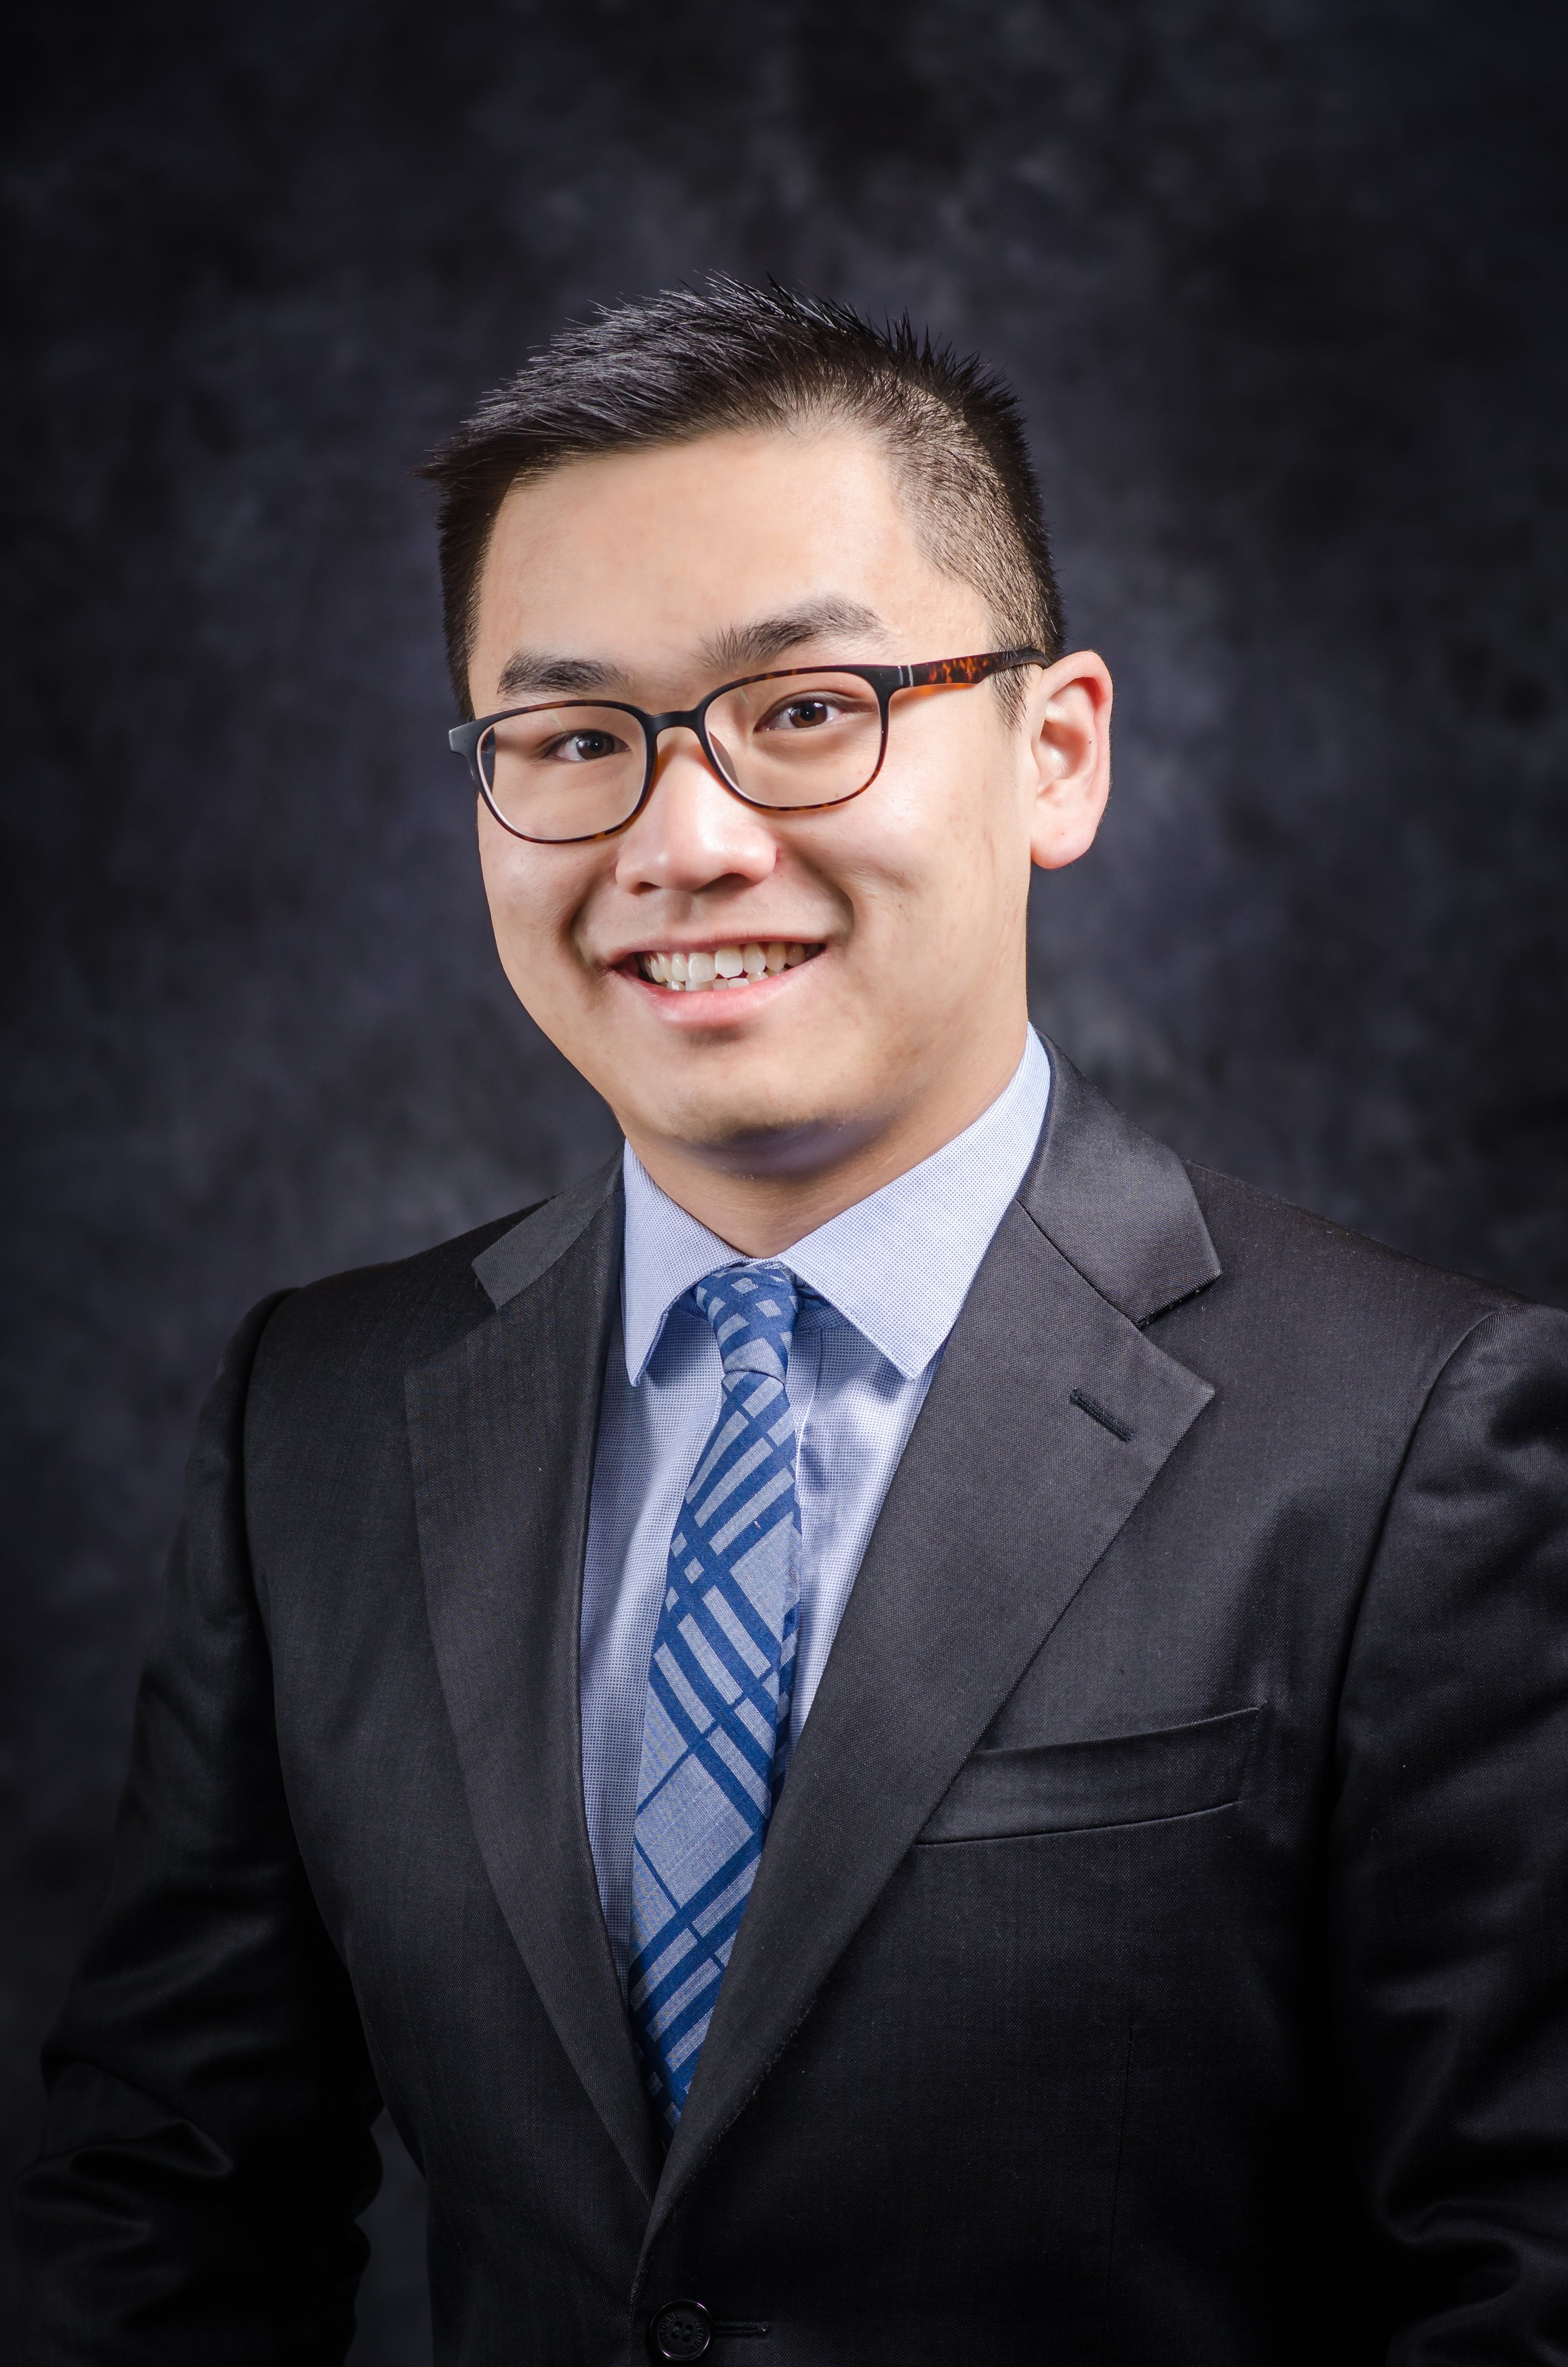 Jason Xi, Vice President of Community Outreach - Jason grew up in Shanghai, China and graduated from the College of William and Mary with a major in Economics and a minor in Finance. He is interested in international affairs and spent a semester abroad at Keio University in Japan. In his free time, he enjoys good food and watching legal drama and movies.Other Engagements: Immigration and Refugee Project (Director for Volunteering)1L Summer: New York State Attorney General's Office - New York, NY